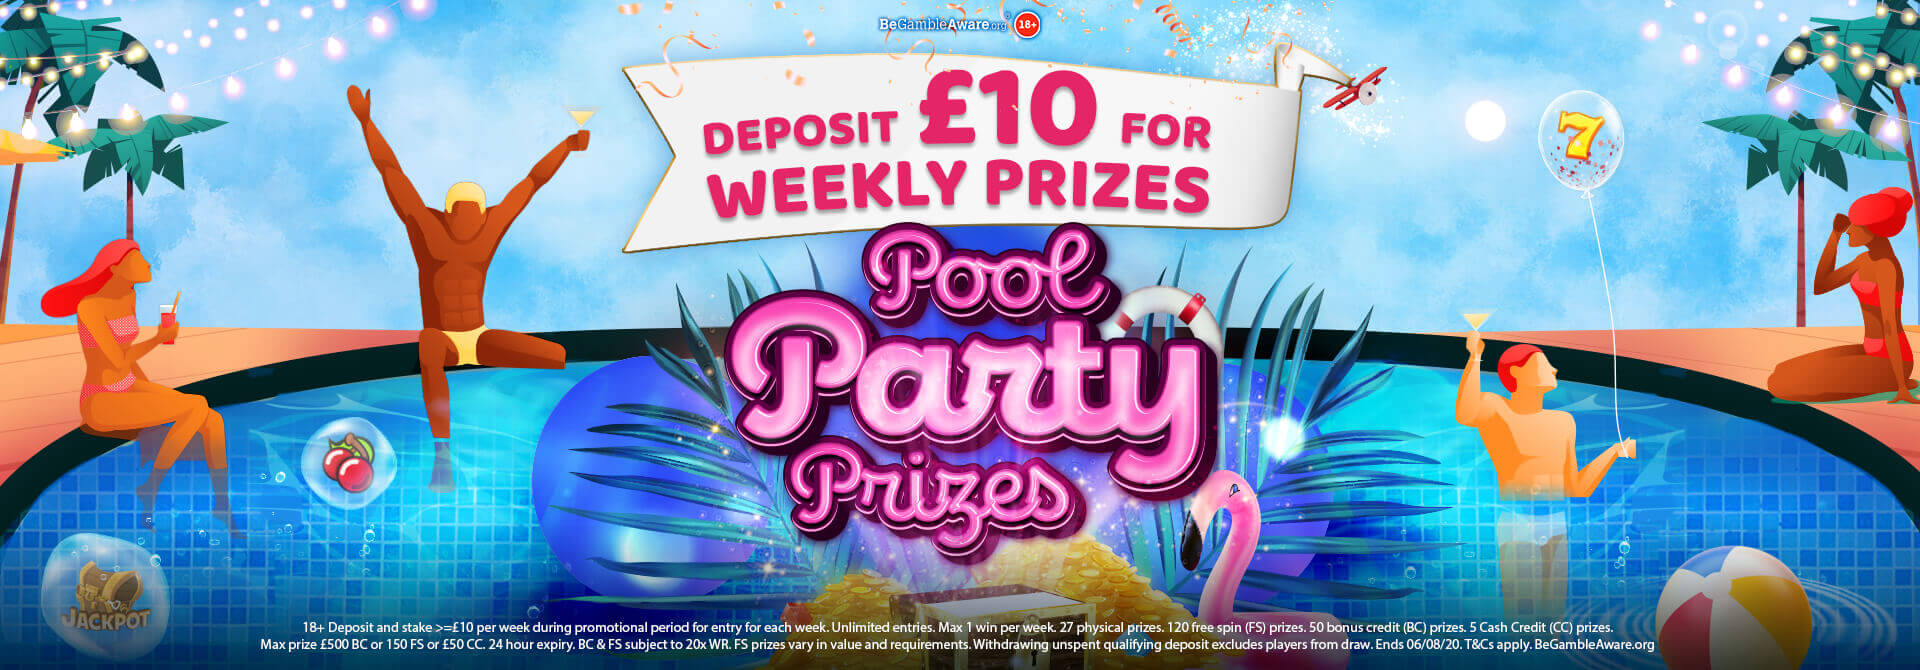 WEEKLY Pool Party Prizes available at mFortune!